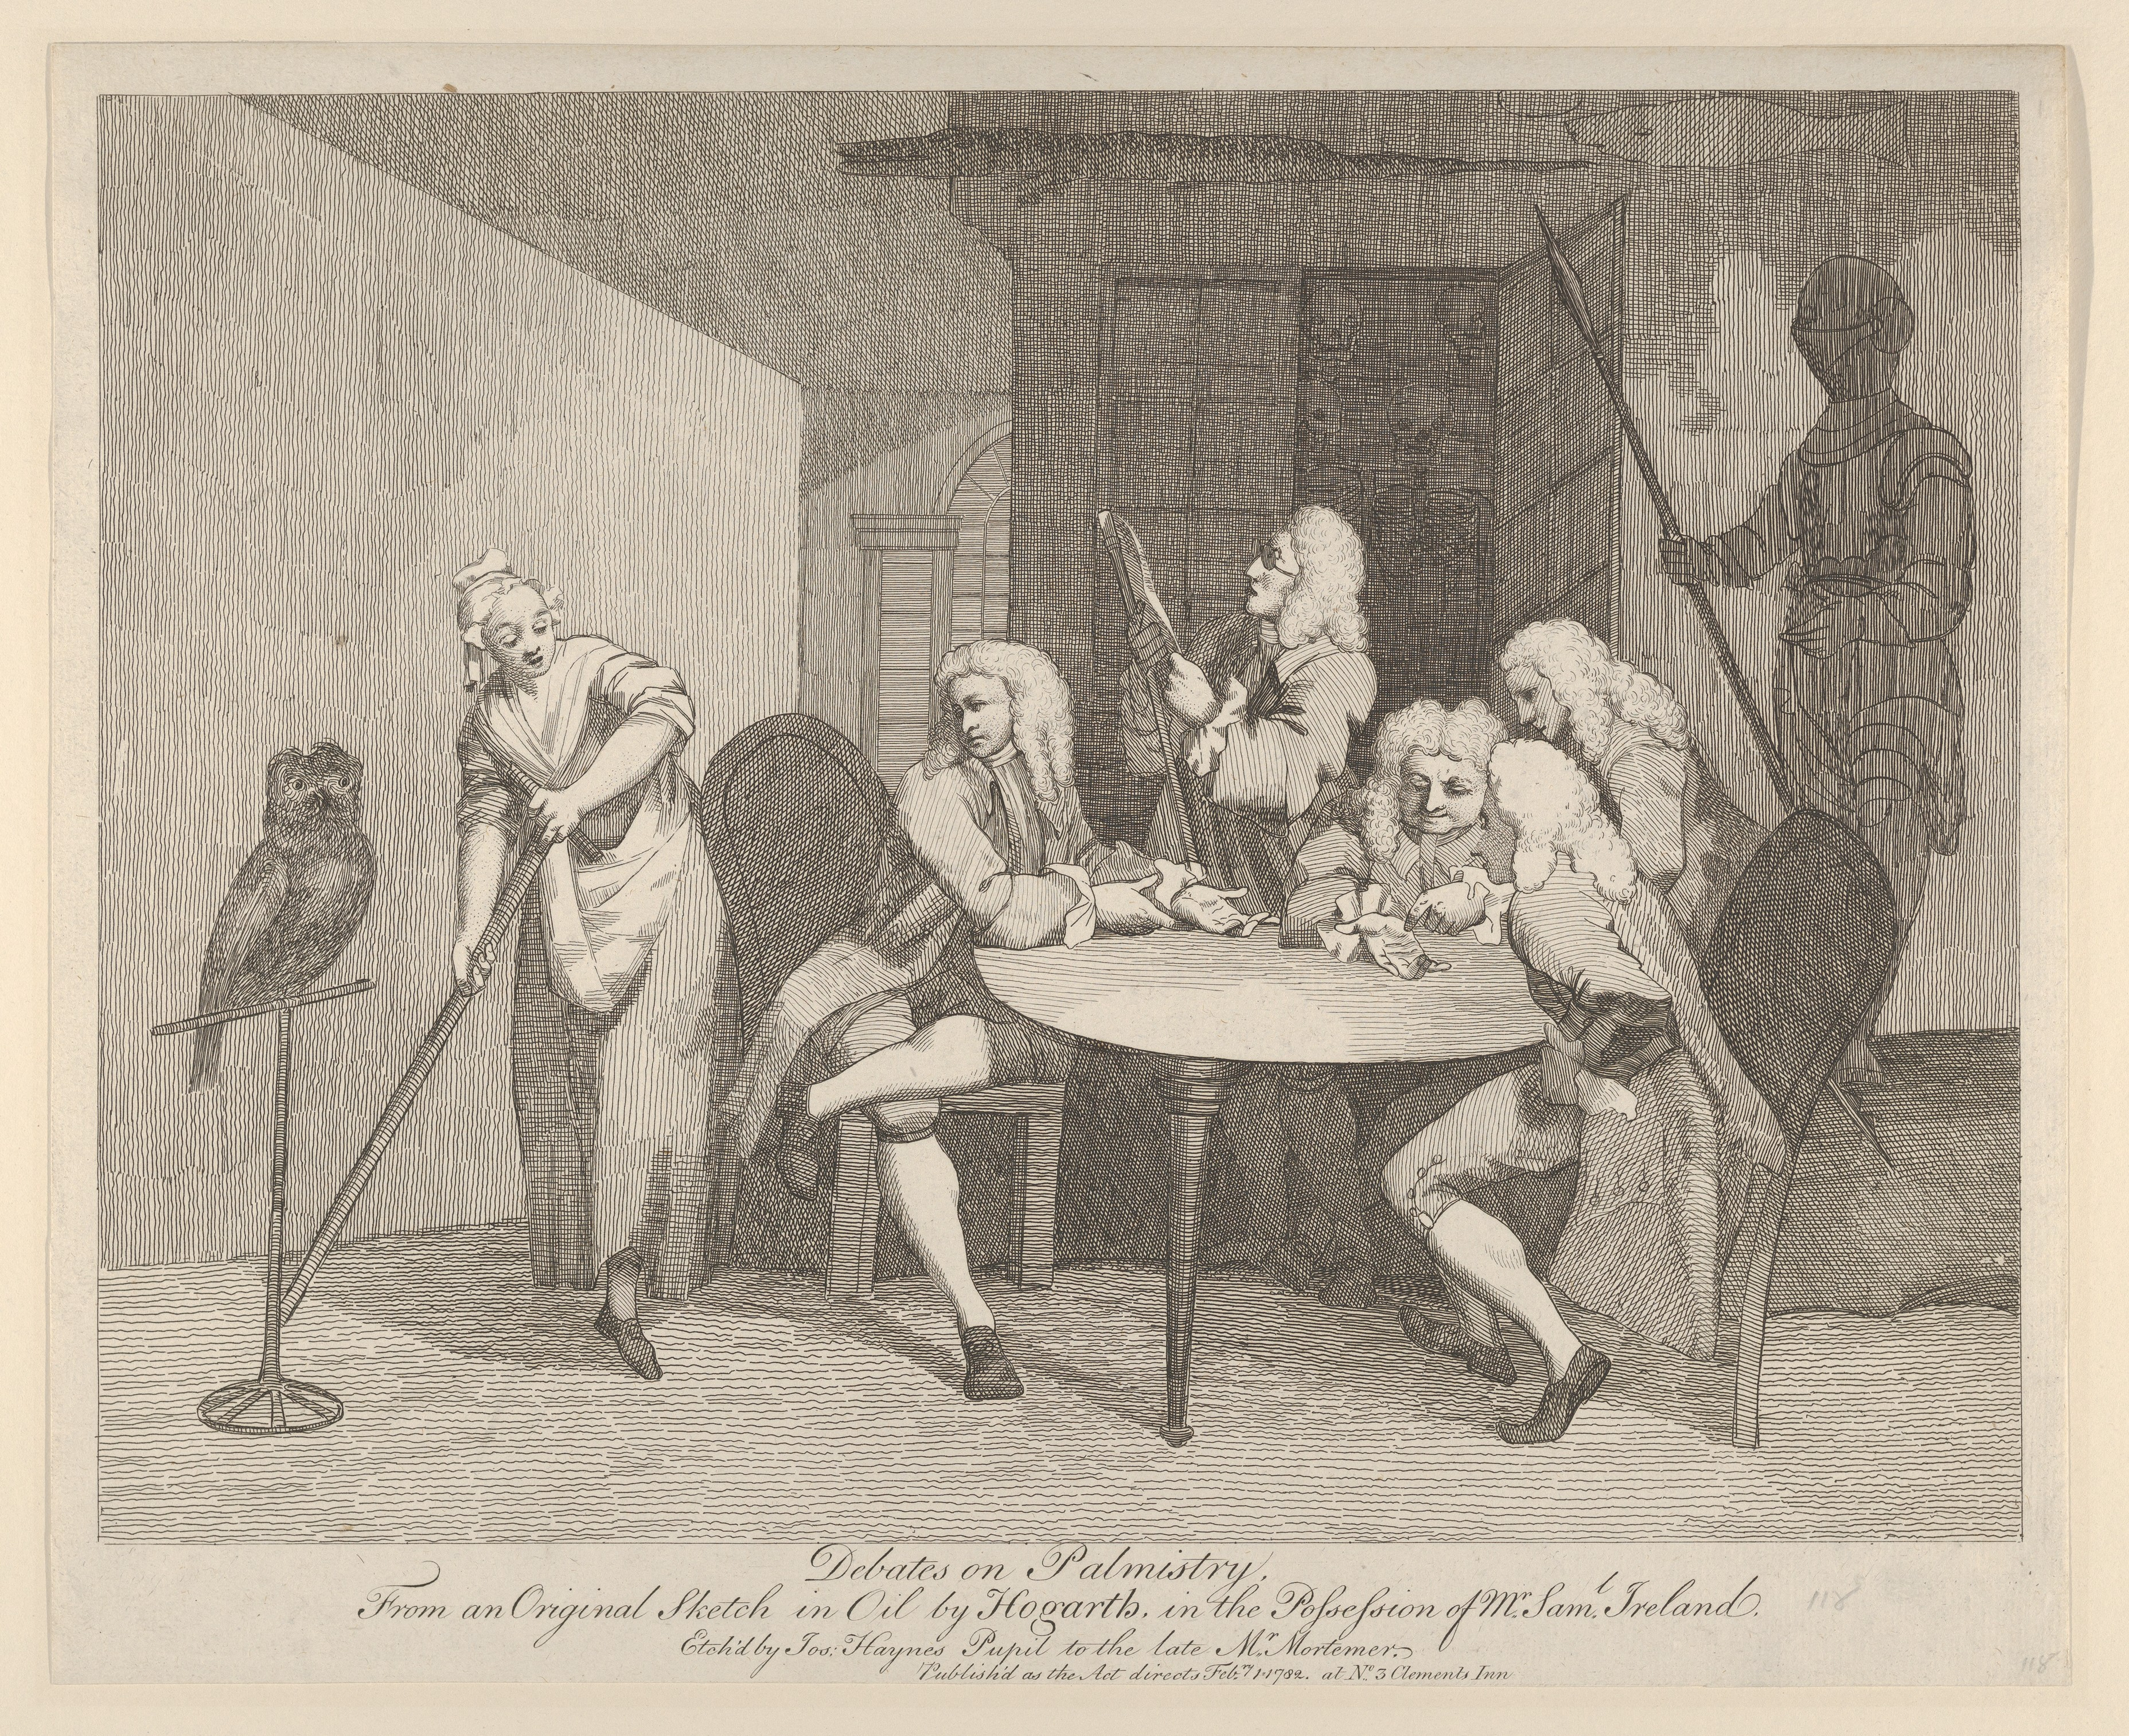 An image of scholars debating palmistry, a popular form of fortune-telling.